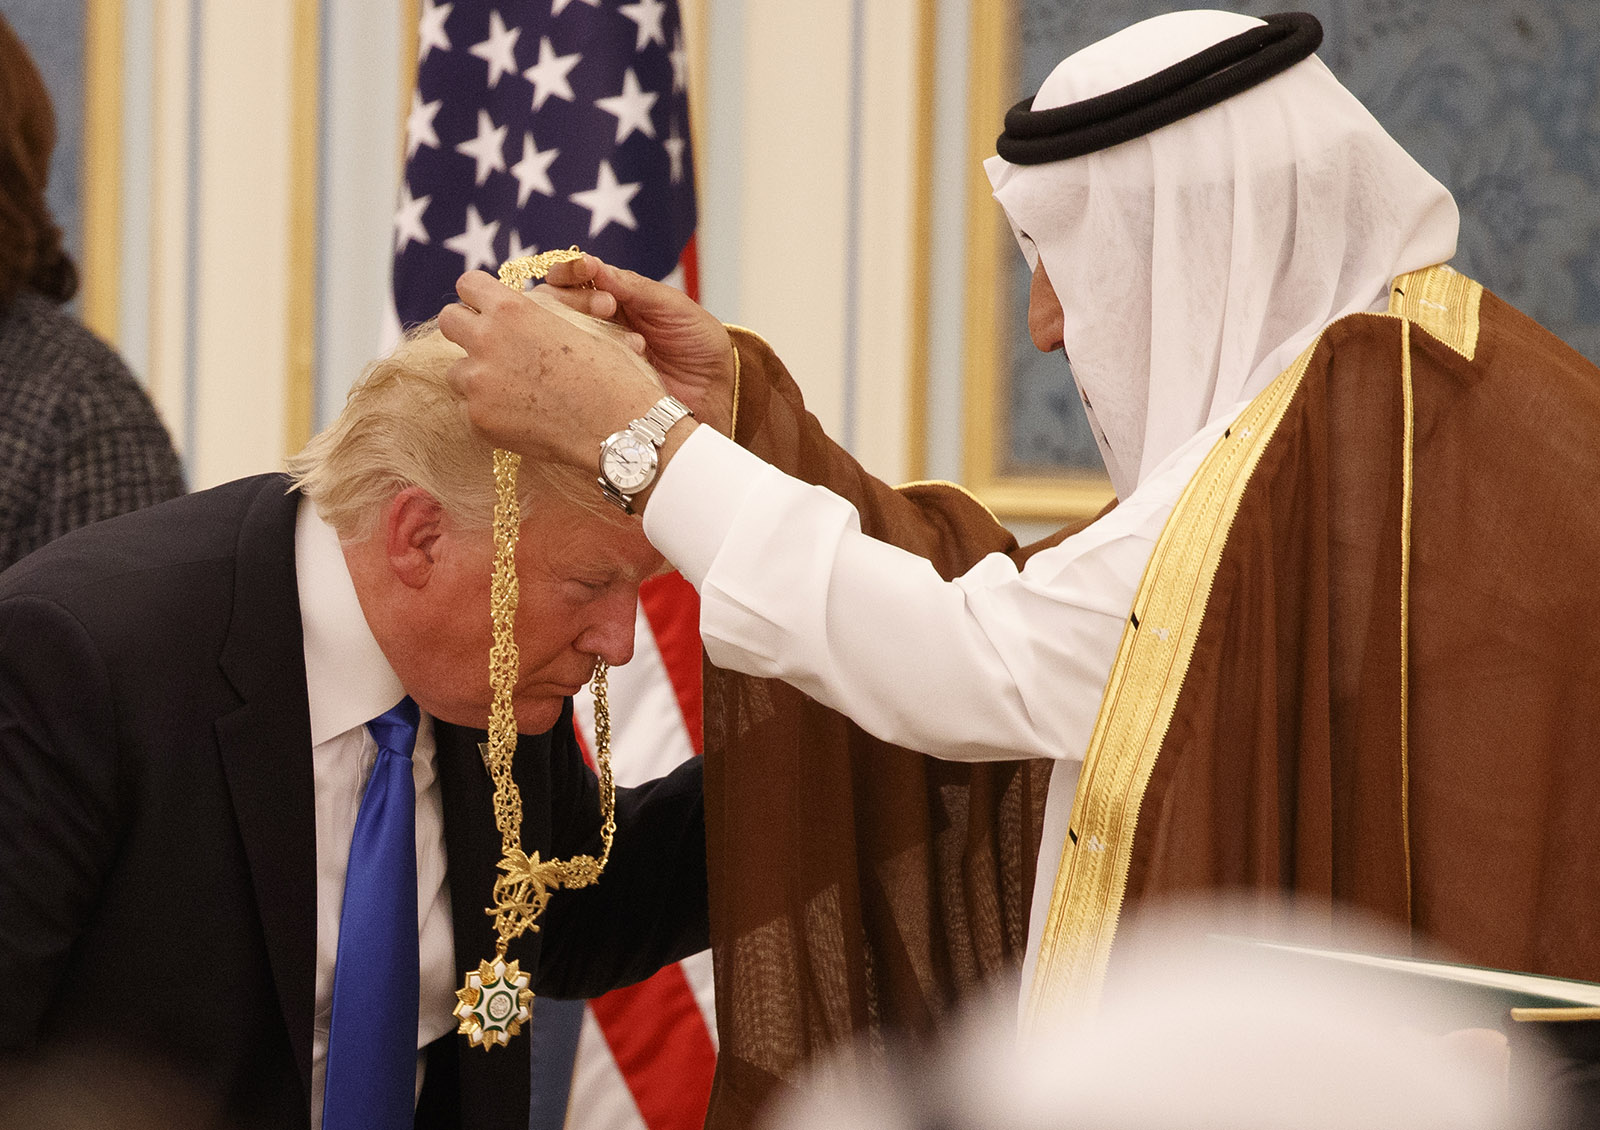 Trump awarded gold medal by Saudi king